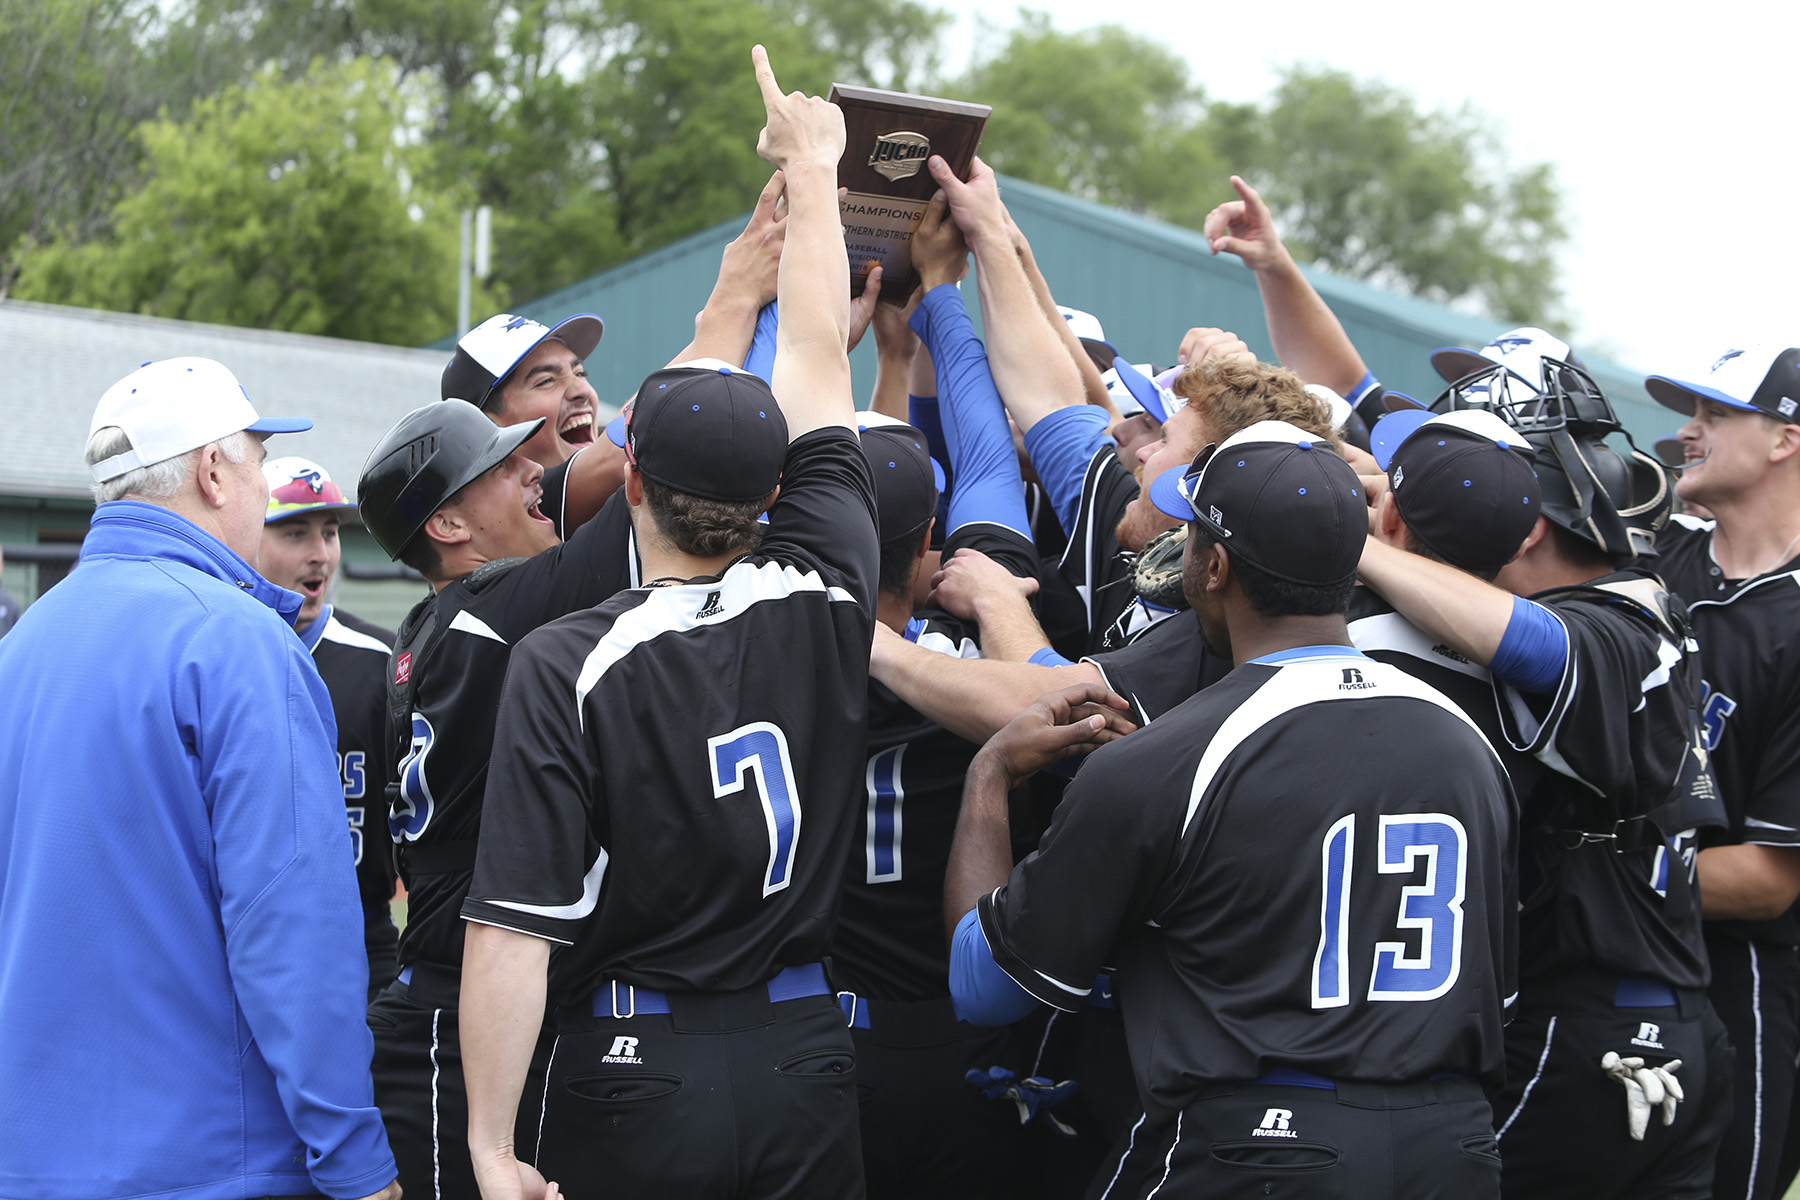 Reivers sweep their way to 18th JUCO World Series appearance!